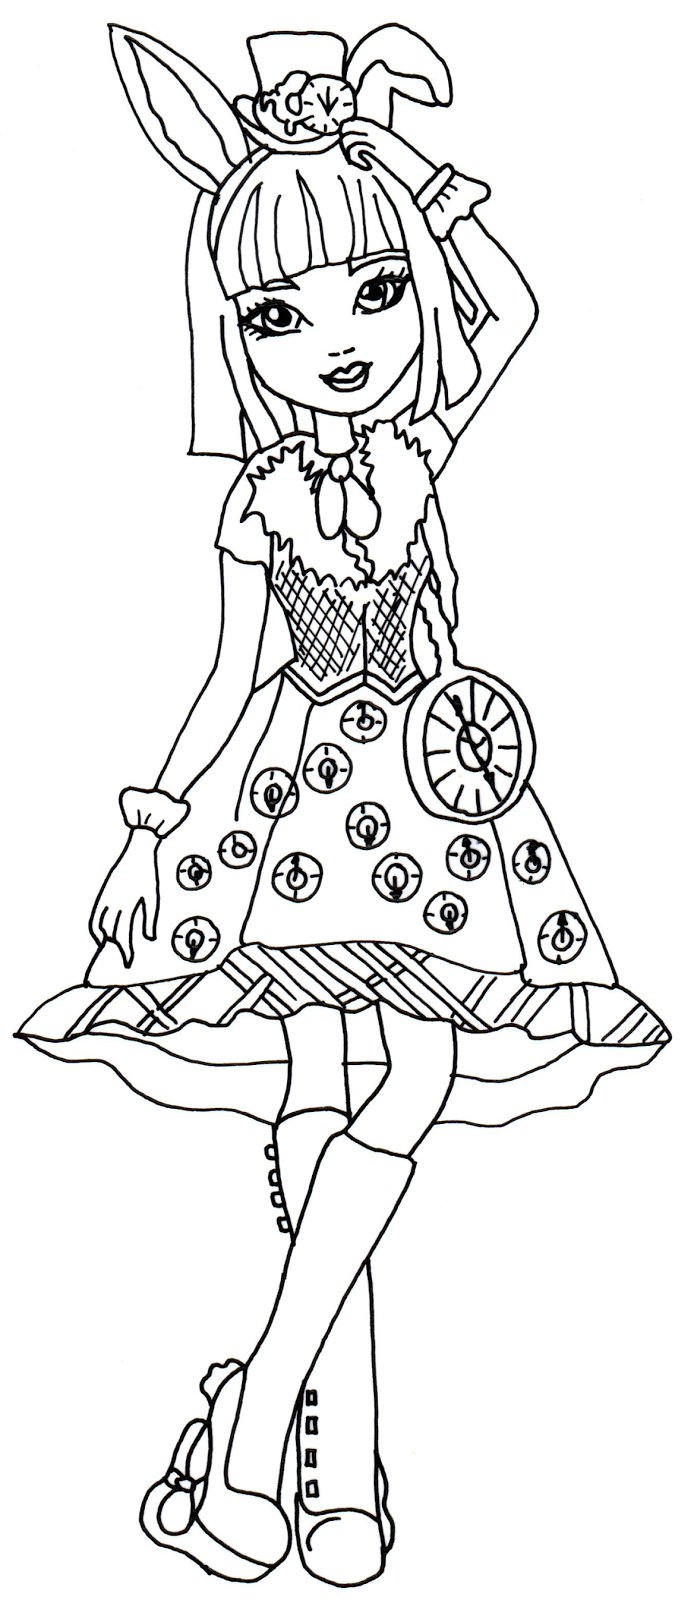 Free Printable Ever After High Coloring Pages Bunny Blanc High Color Page 2